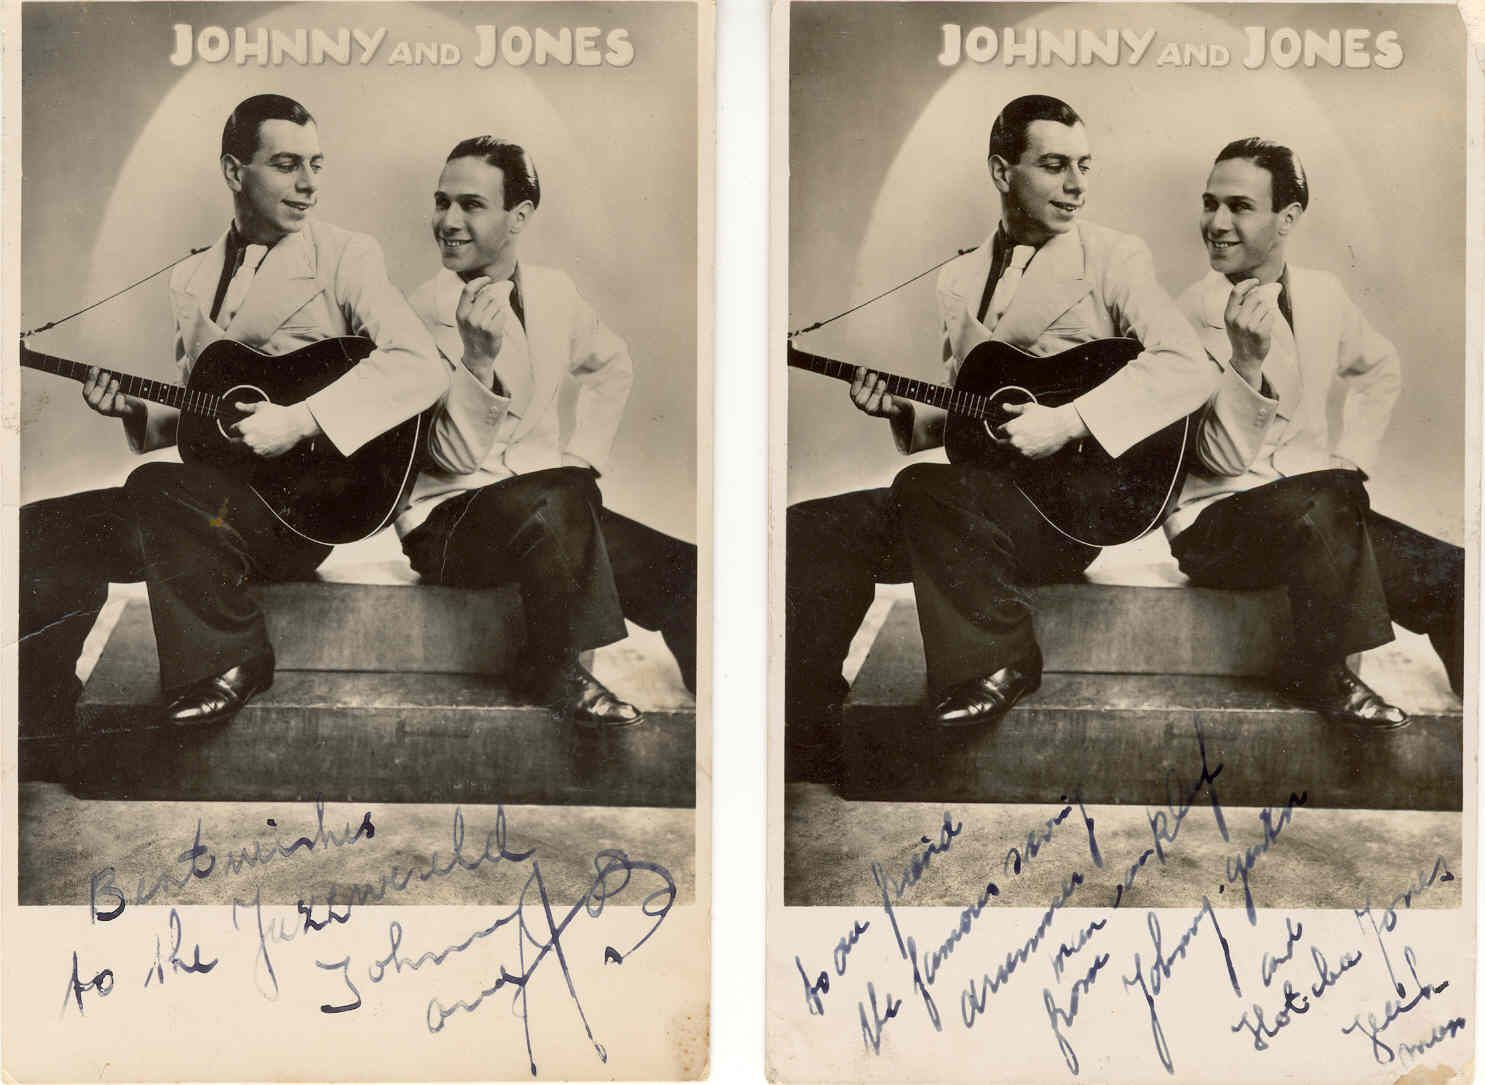 Gesigneerde foto's van het duo Johnny and Jones.